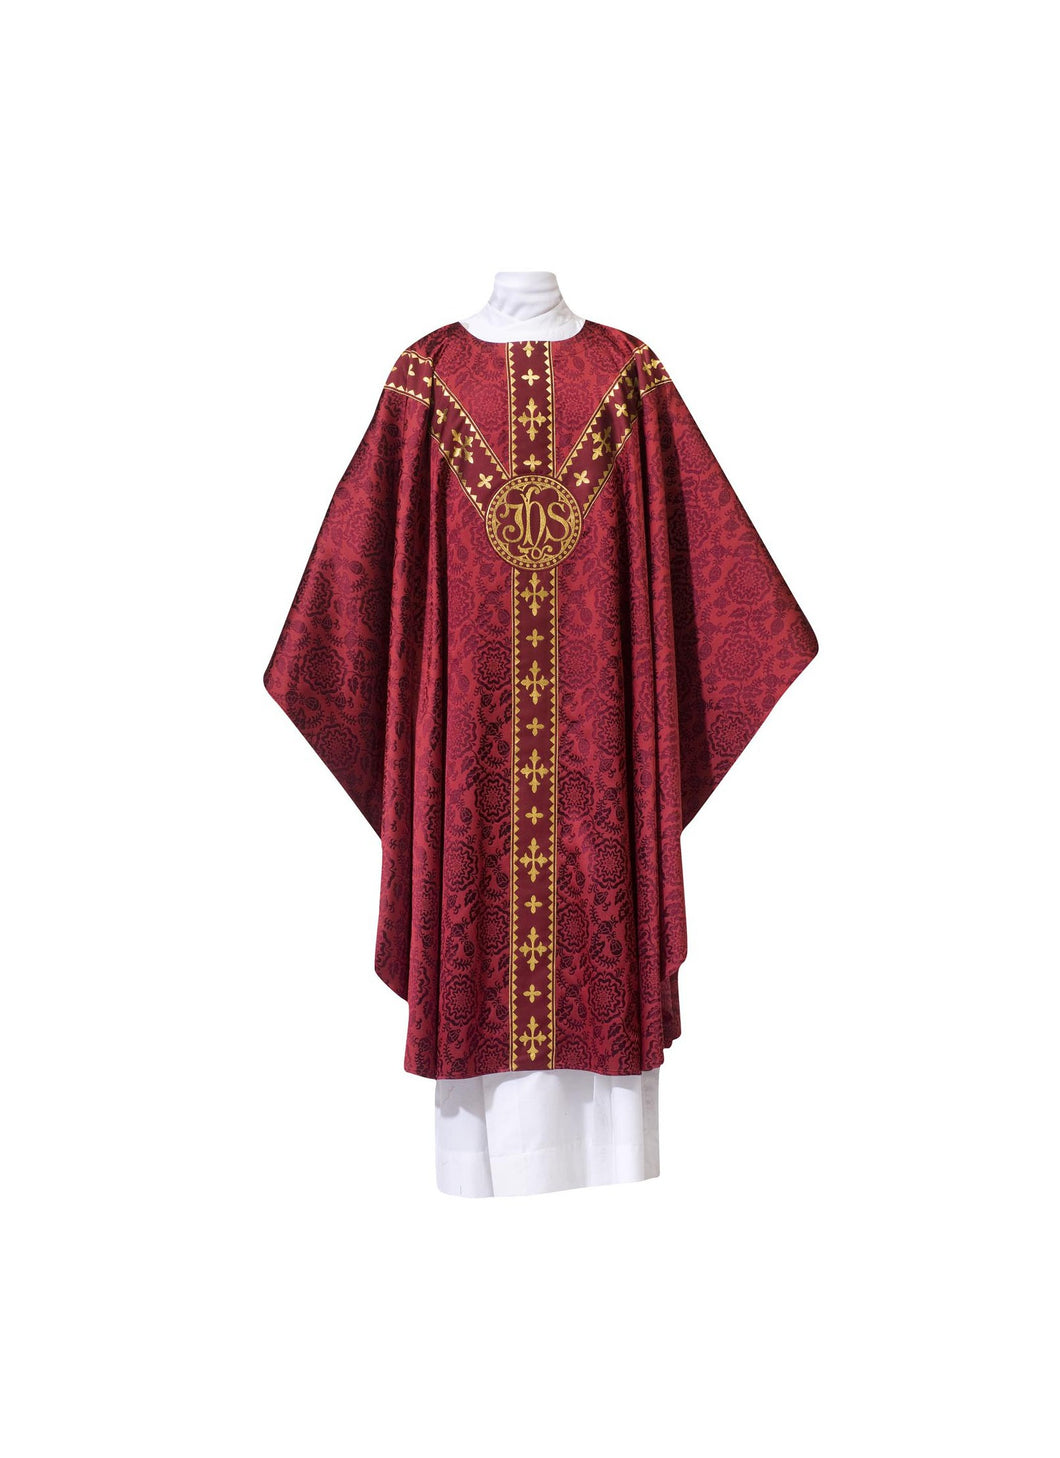 101-0930 CHASUBLE RED